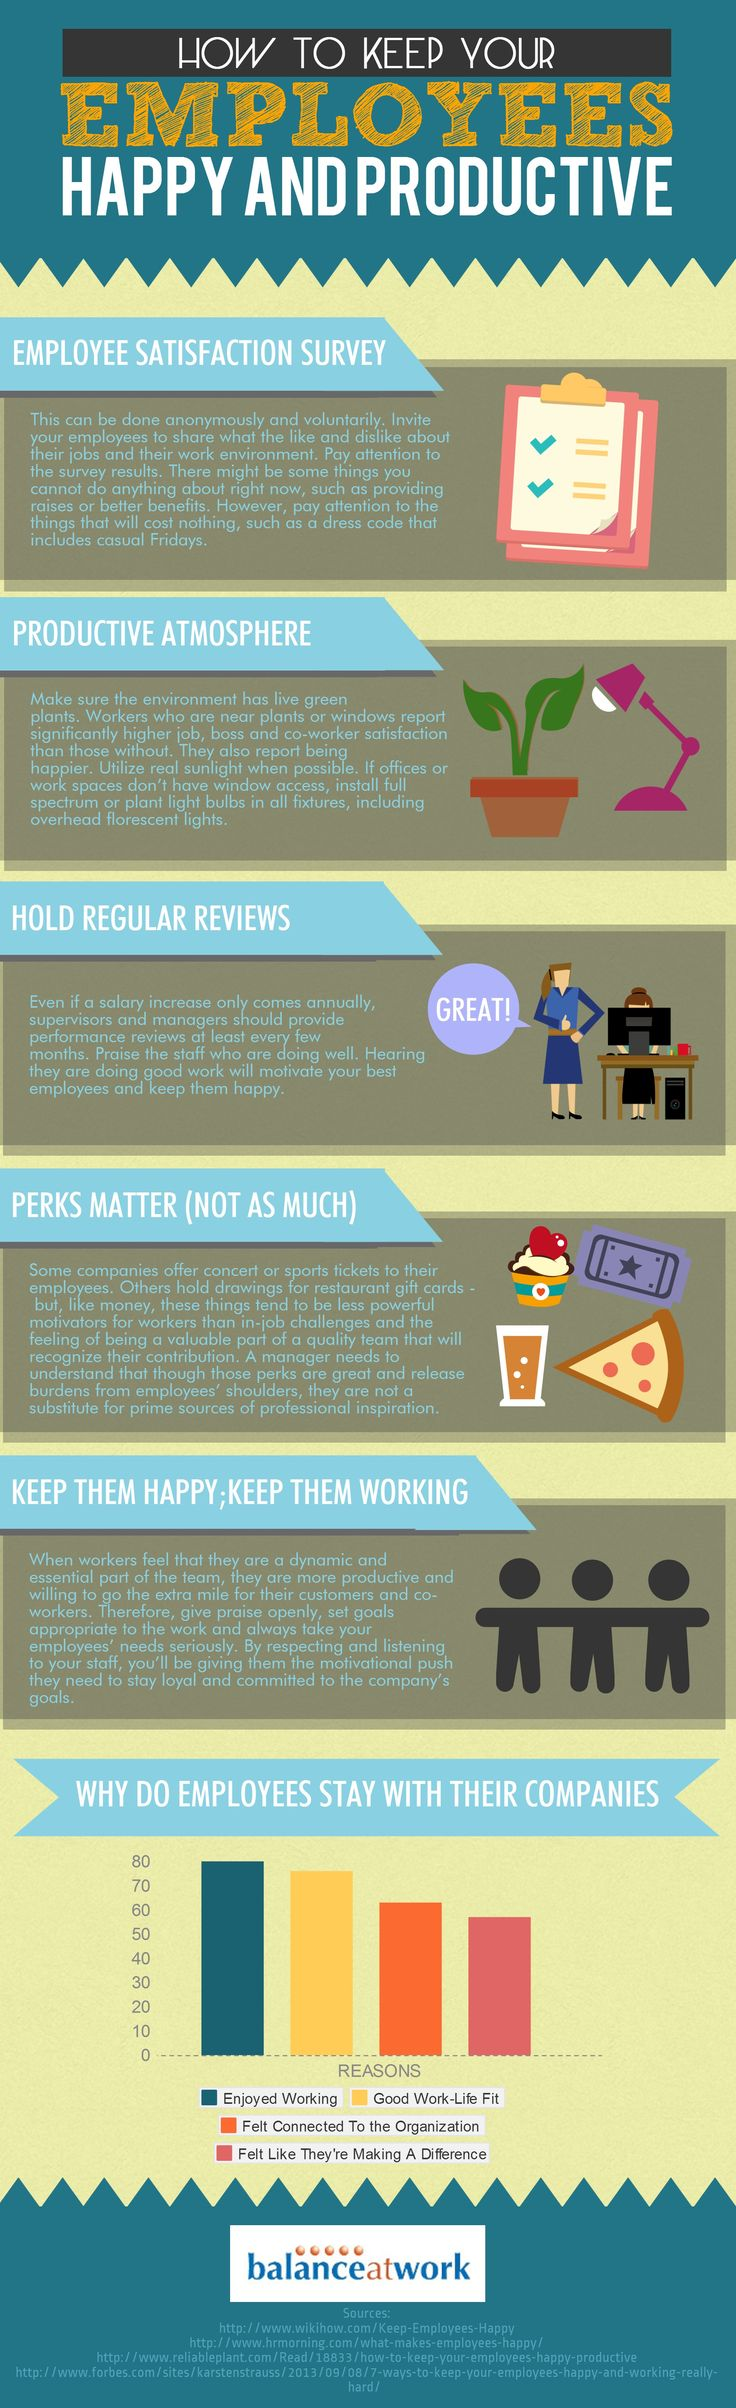 Infographic: How to Keep your Employees Happy and Productive #infographic